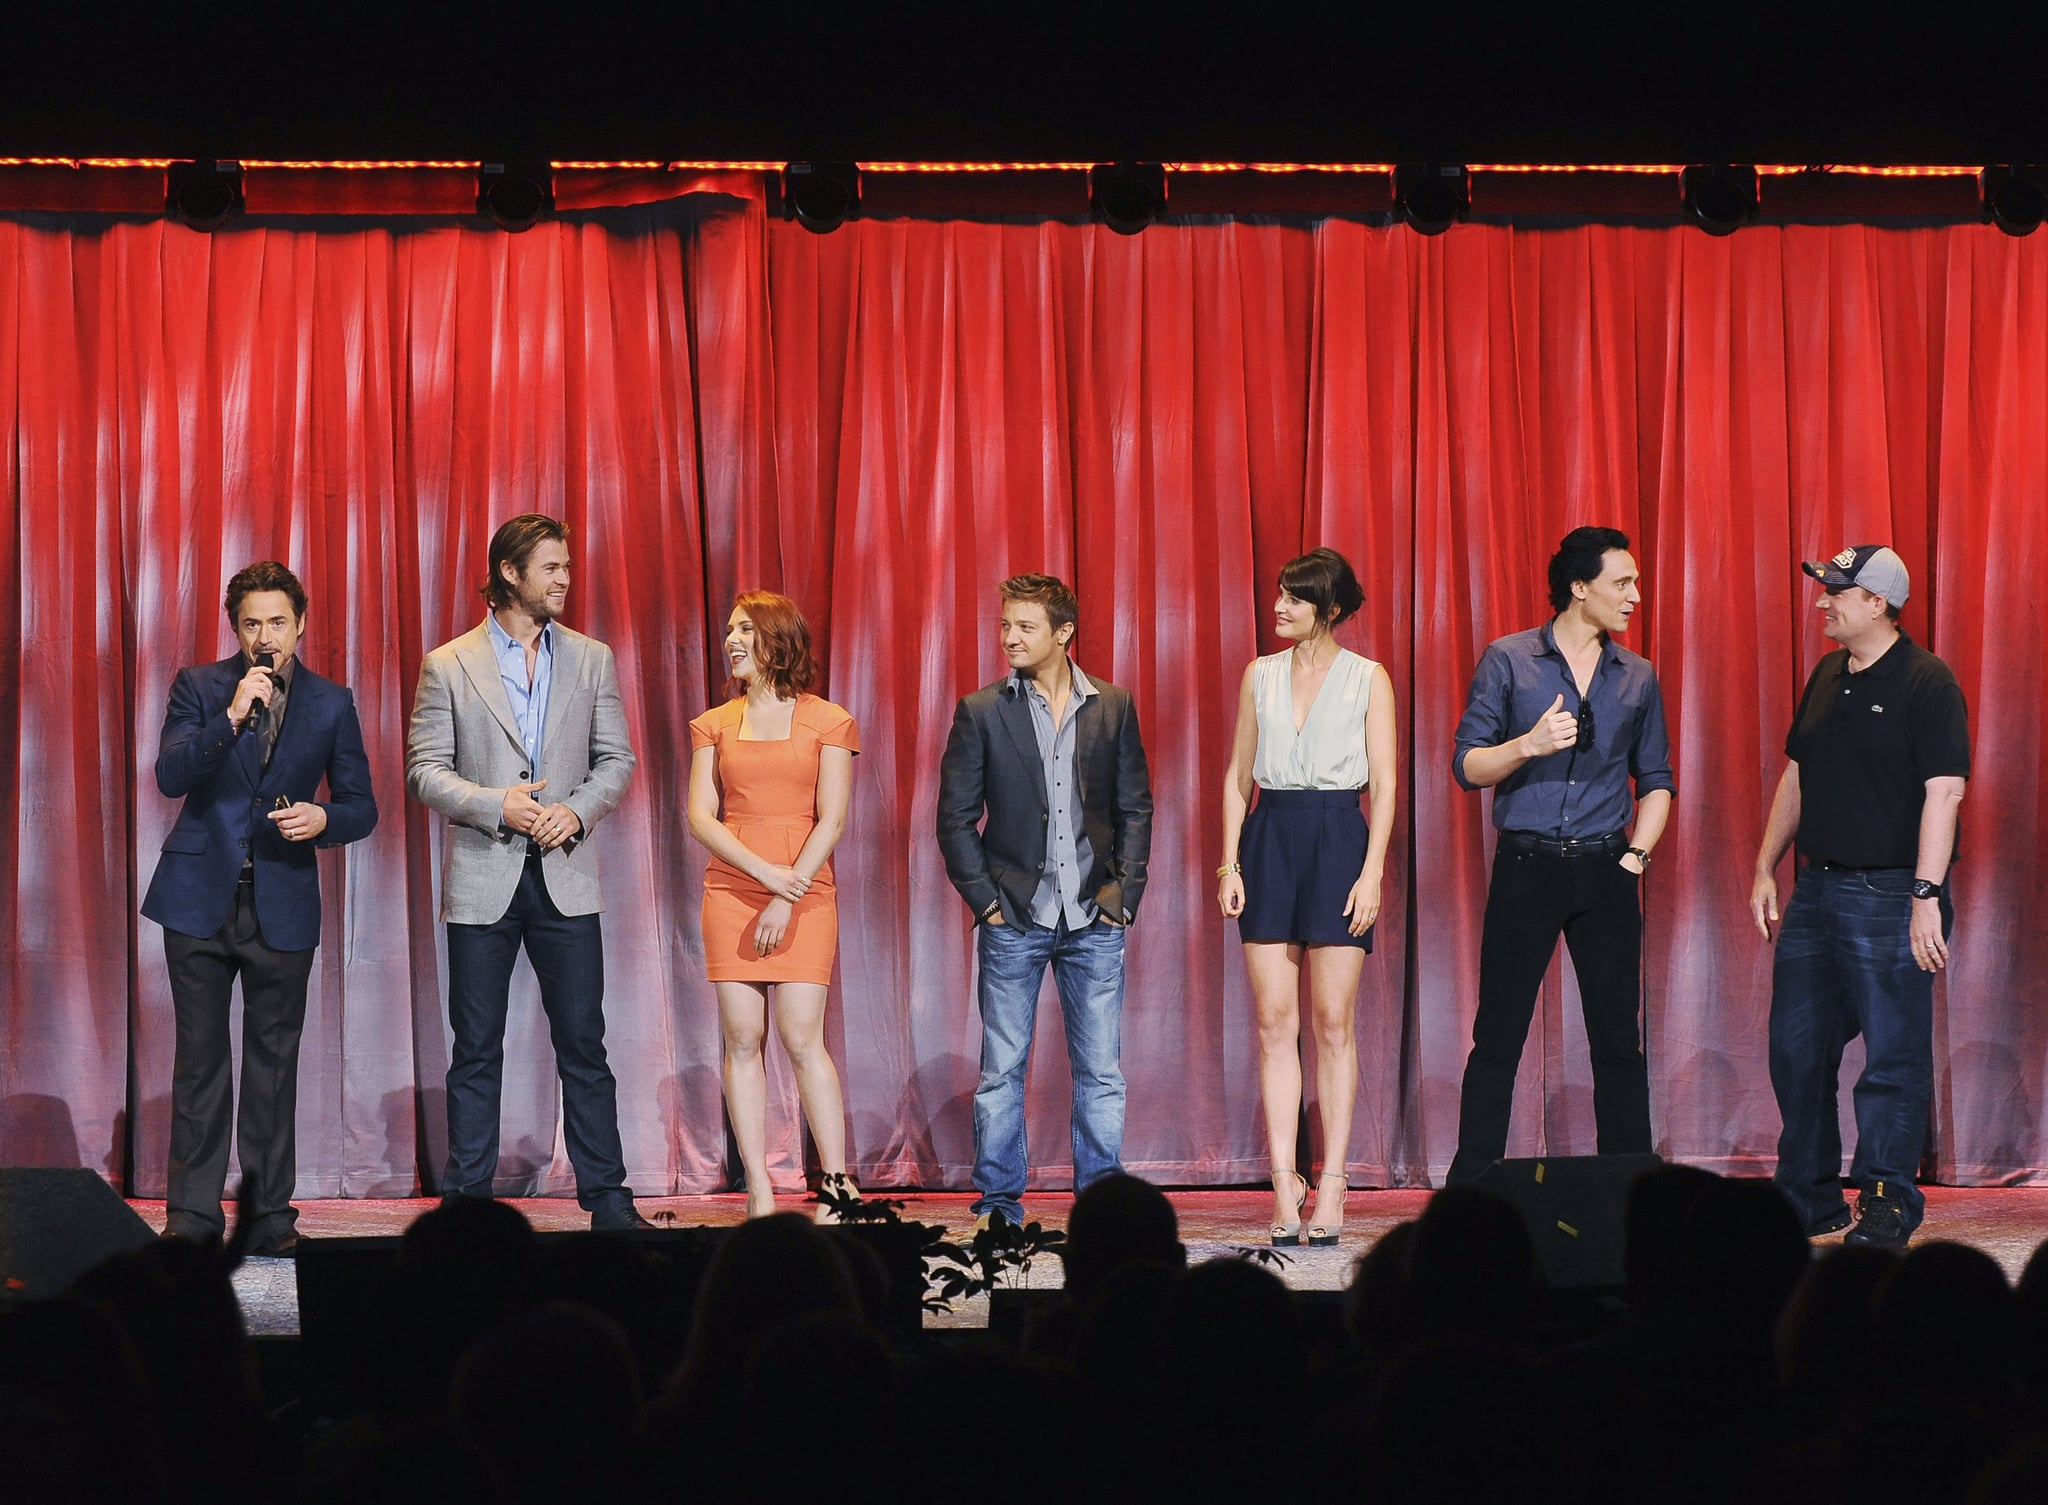 The Avengers cast and producers take the D23 stage.